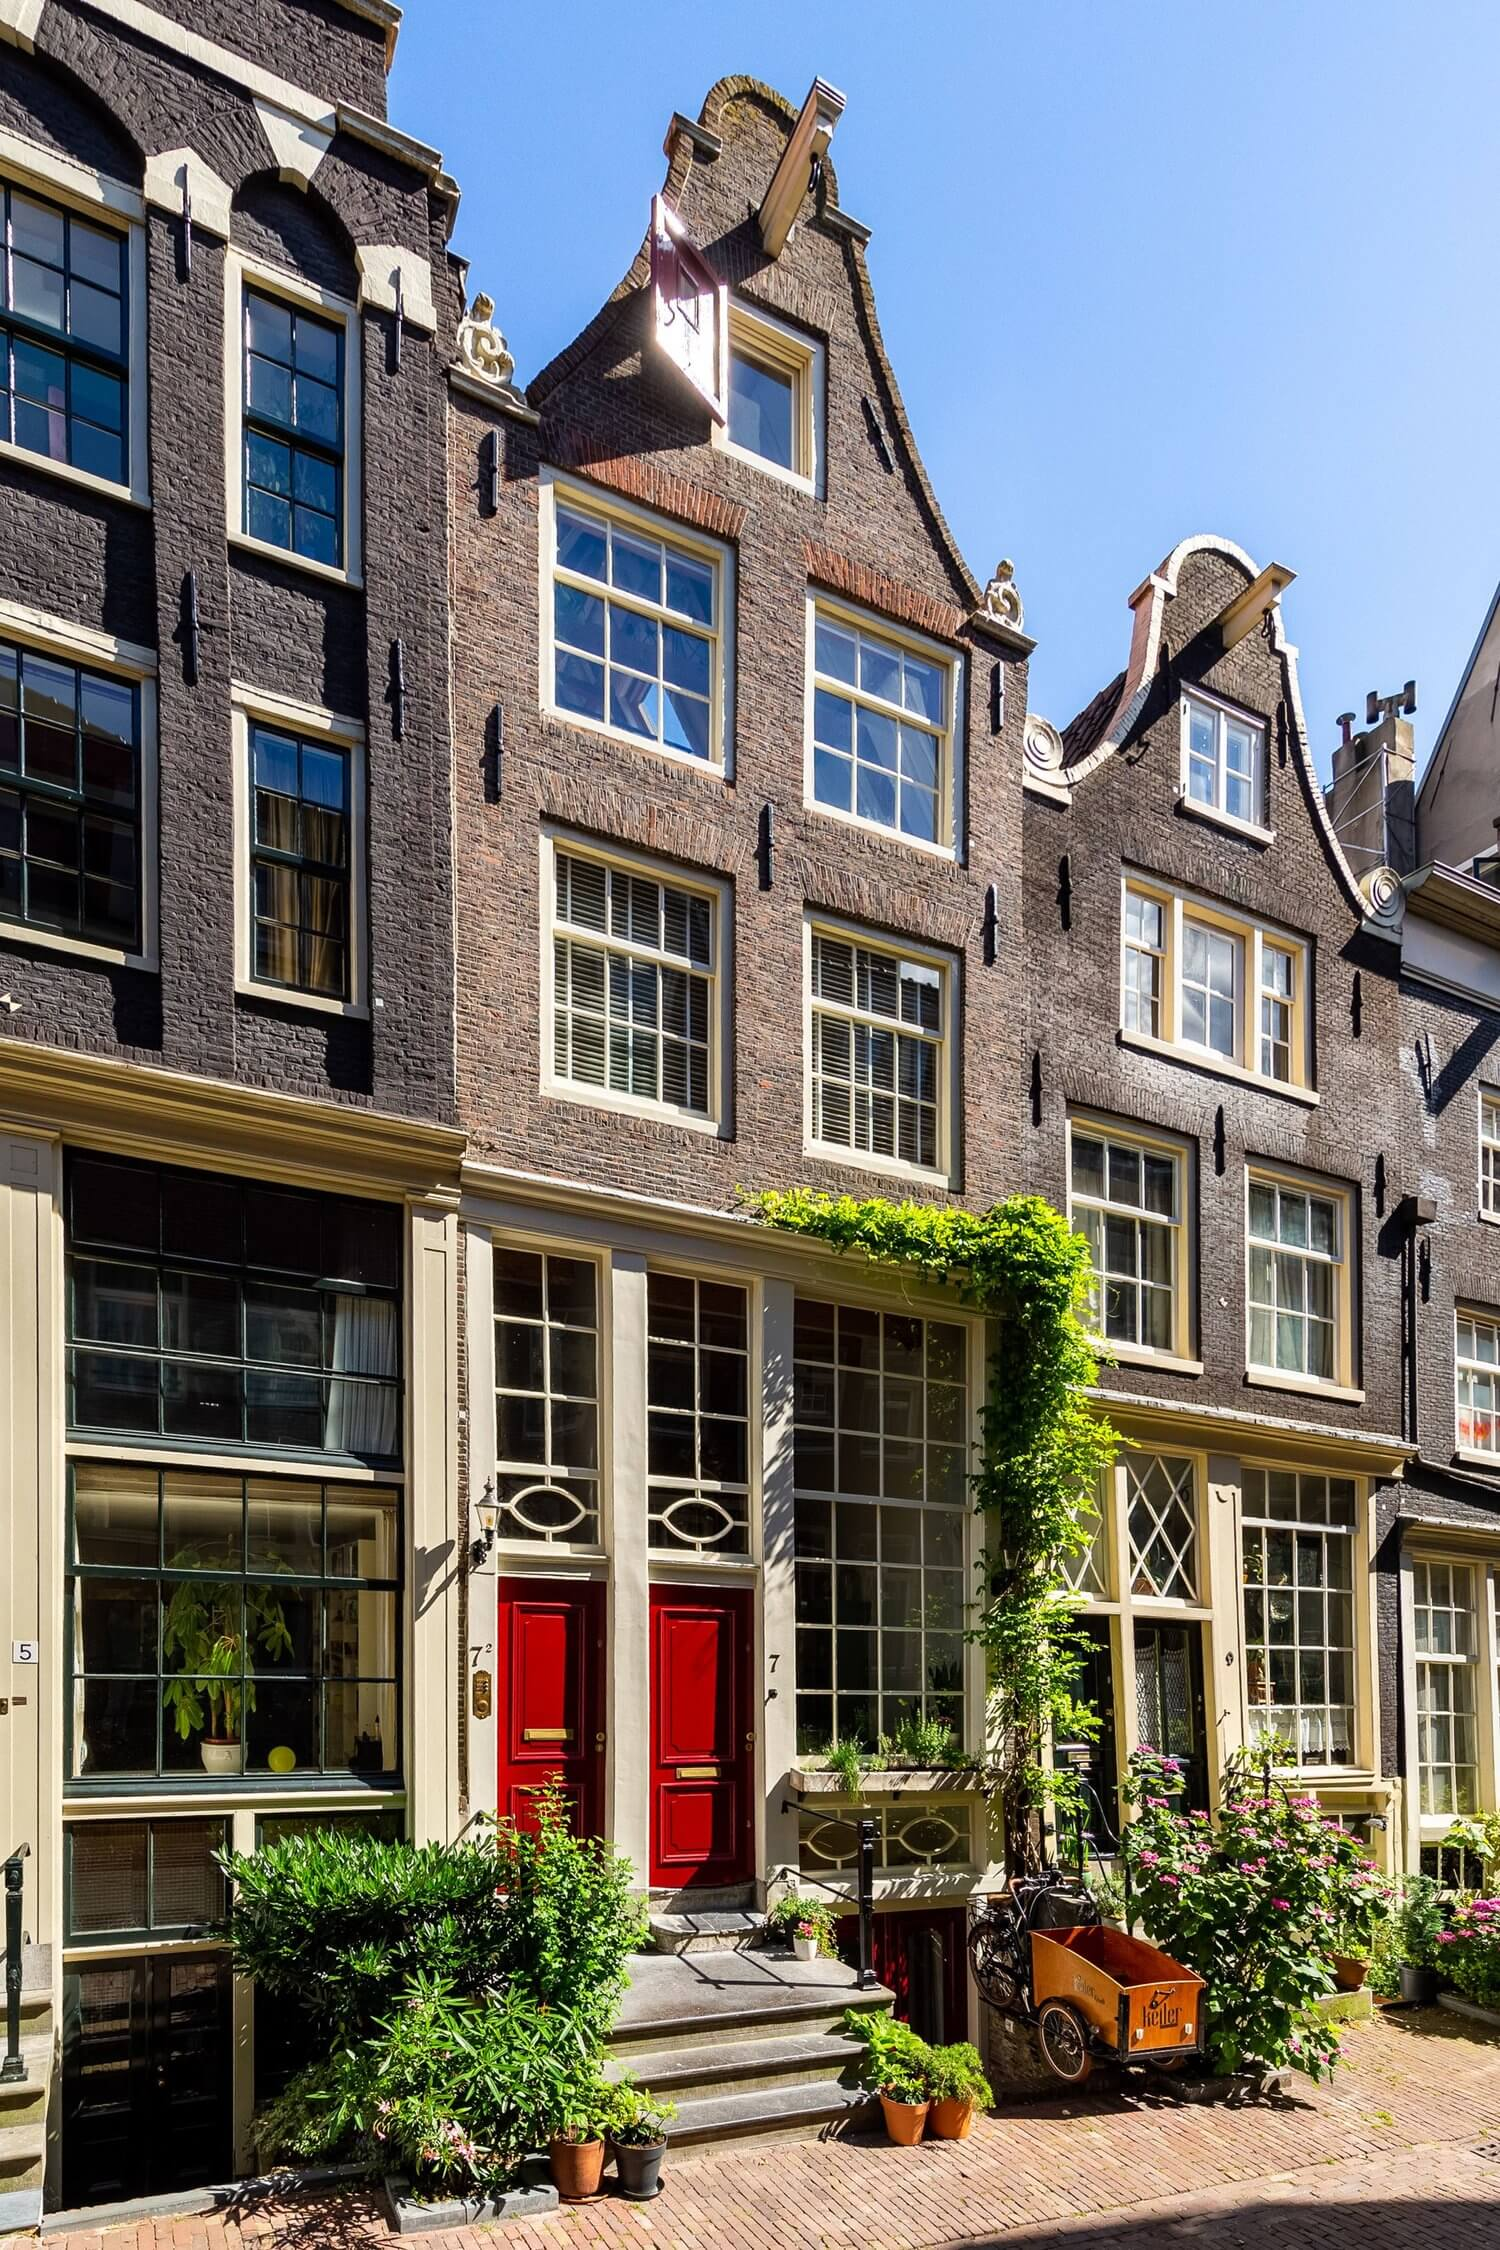 A Characteristic 17th-Century Home in Amsterdam